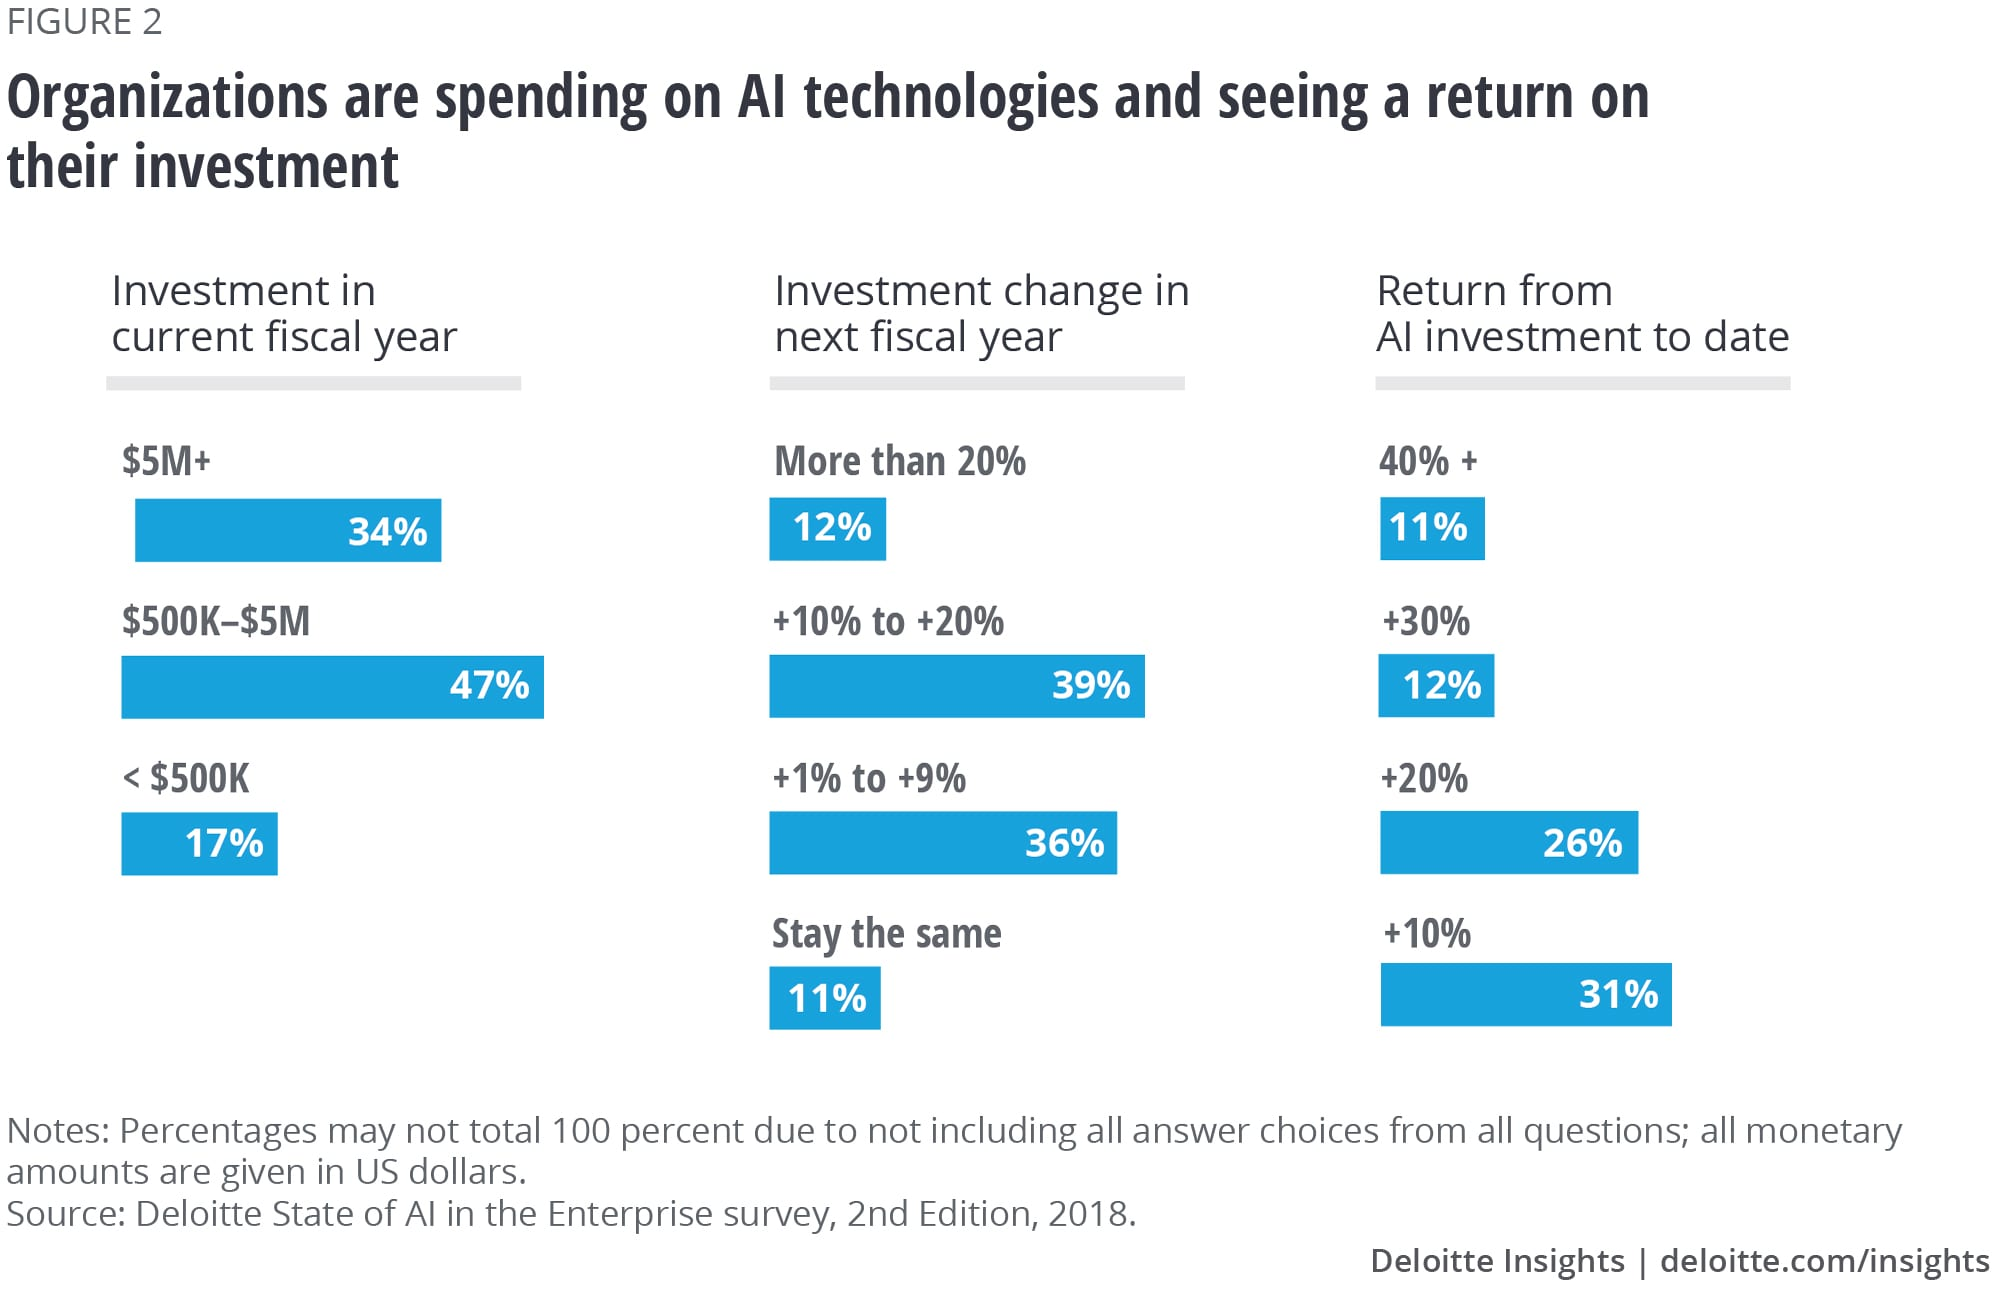 Organizations are spending on AI technologies and seeing a return on their investment